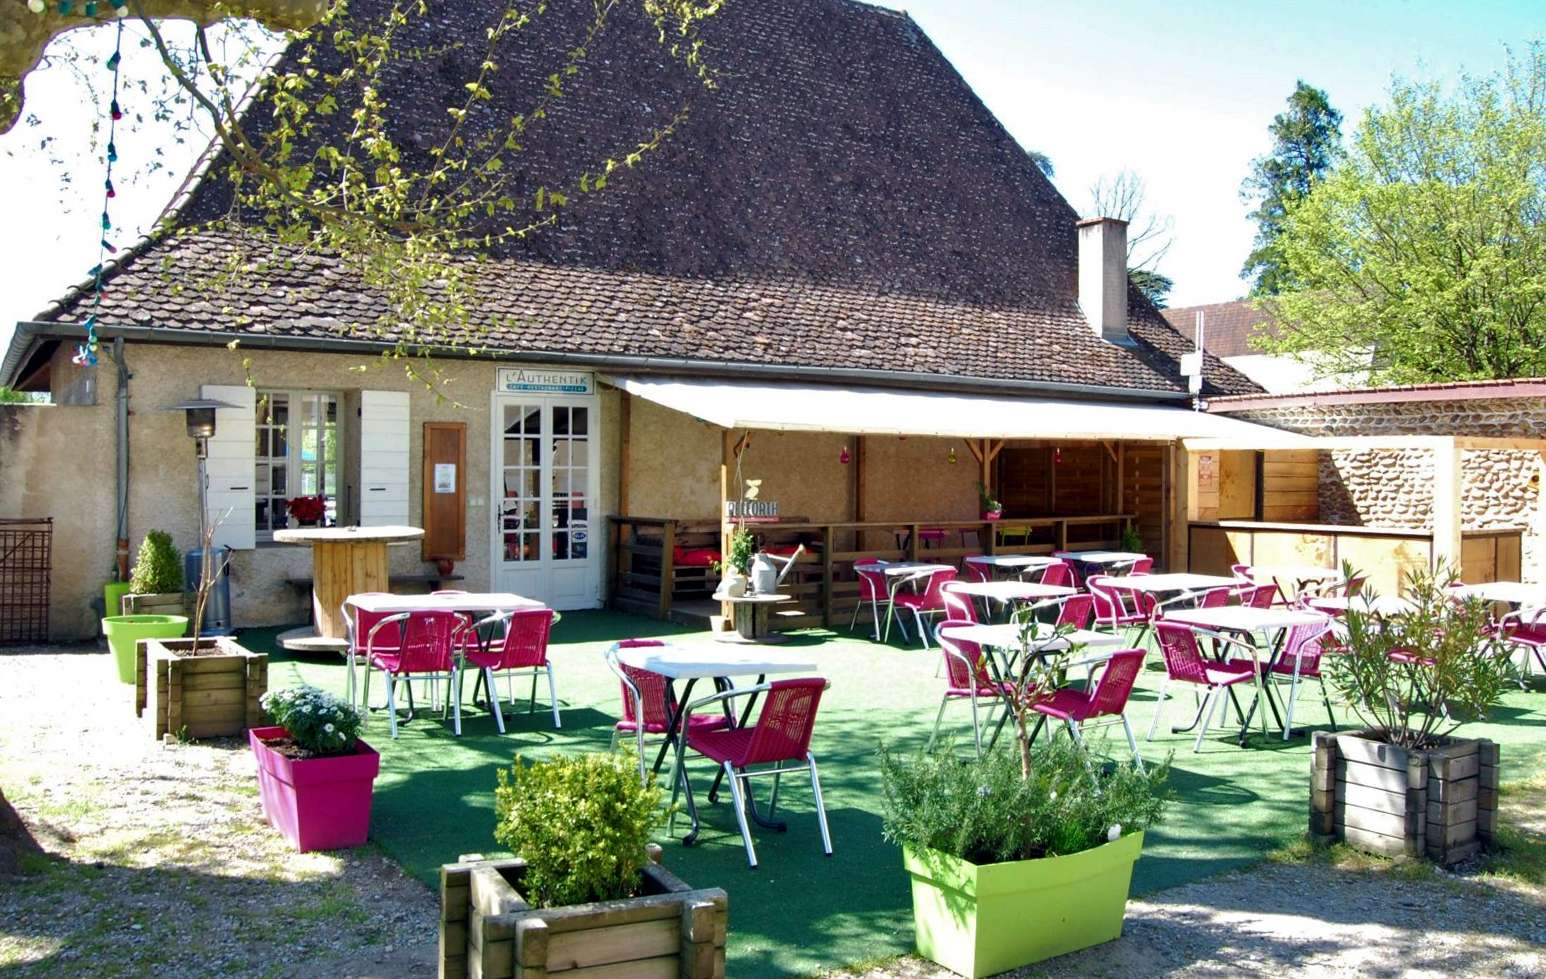 Camping Le Chateau in Hauterives